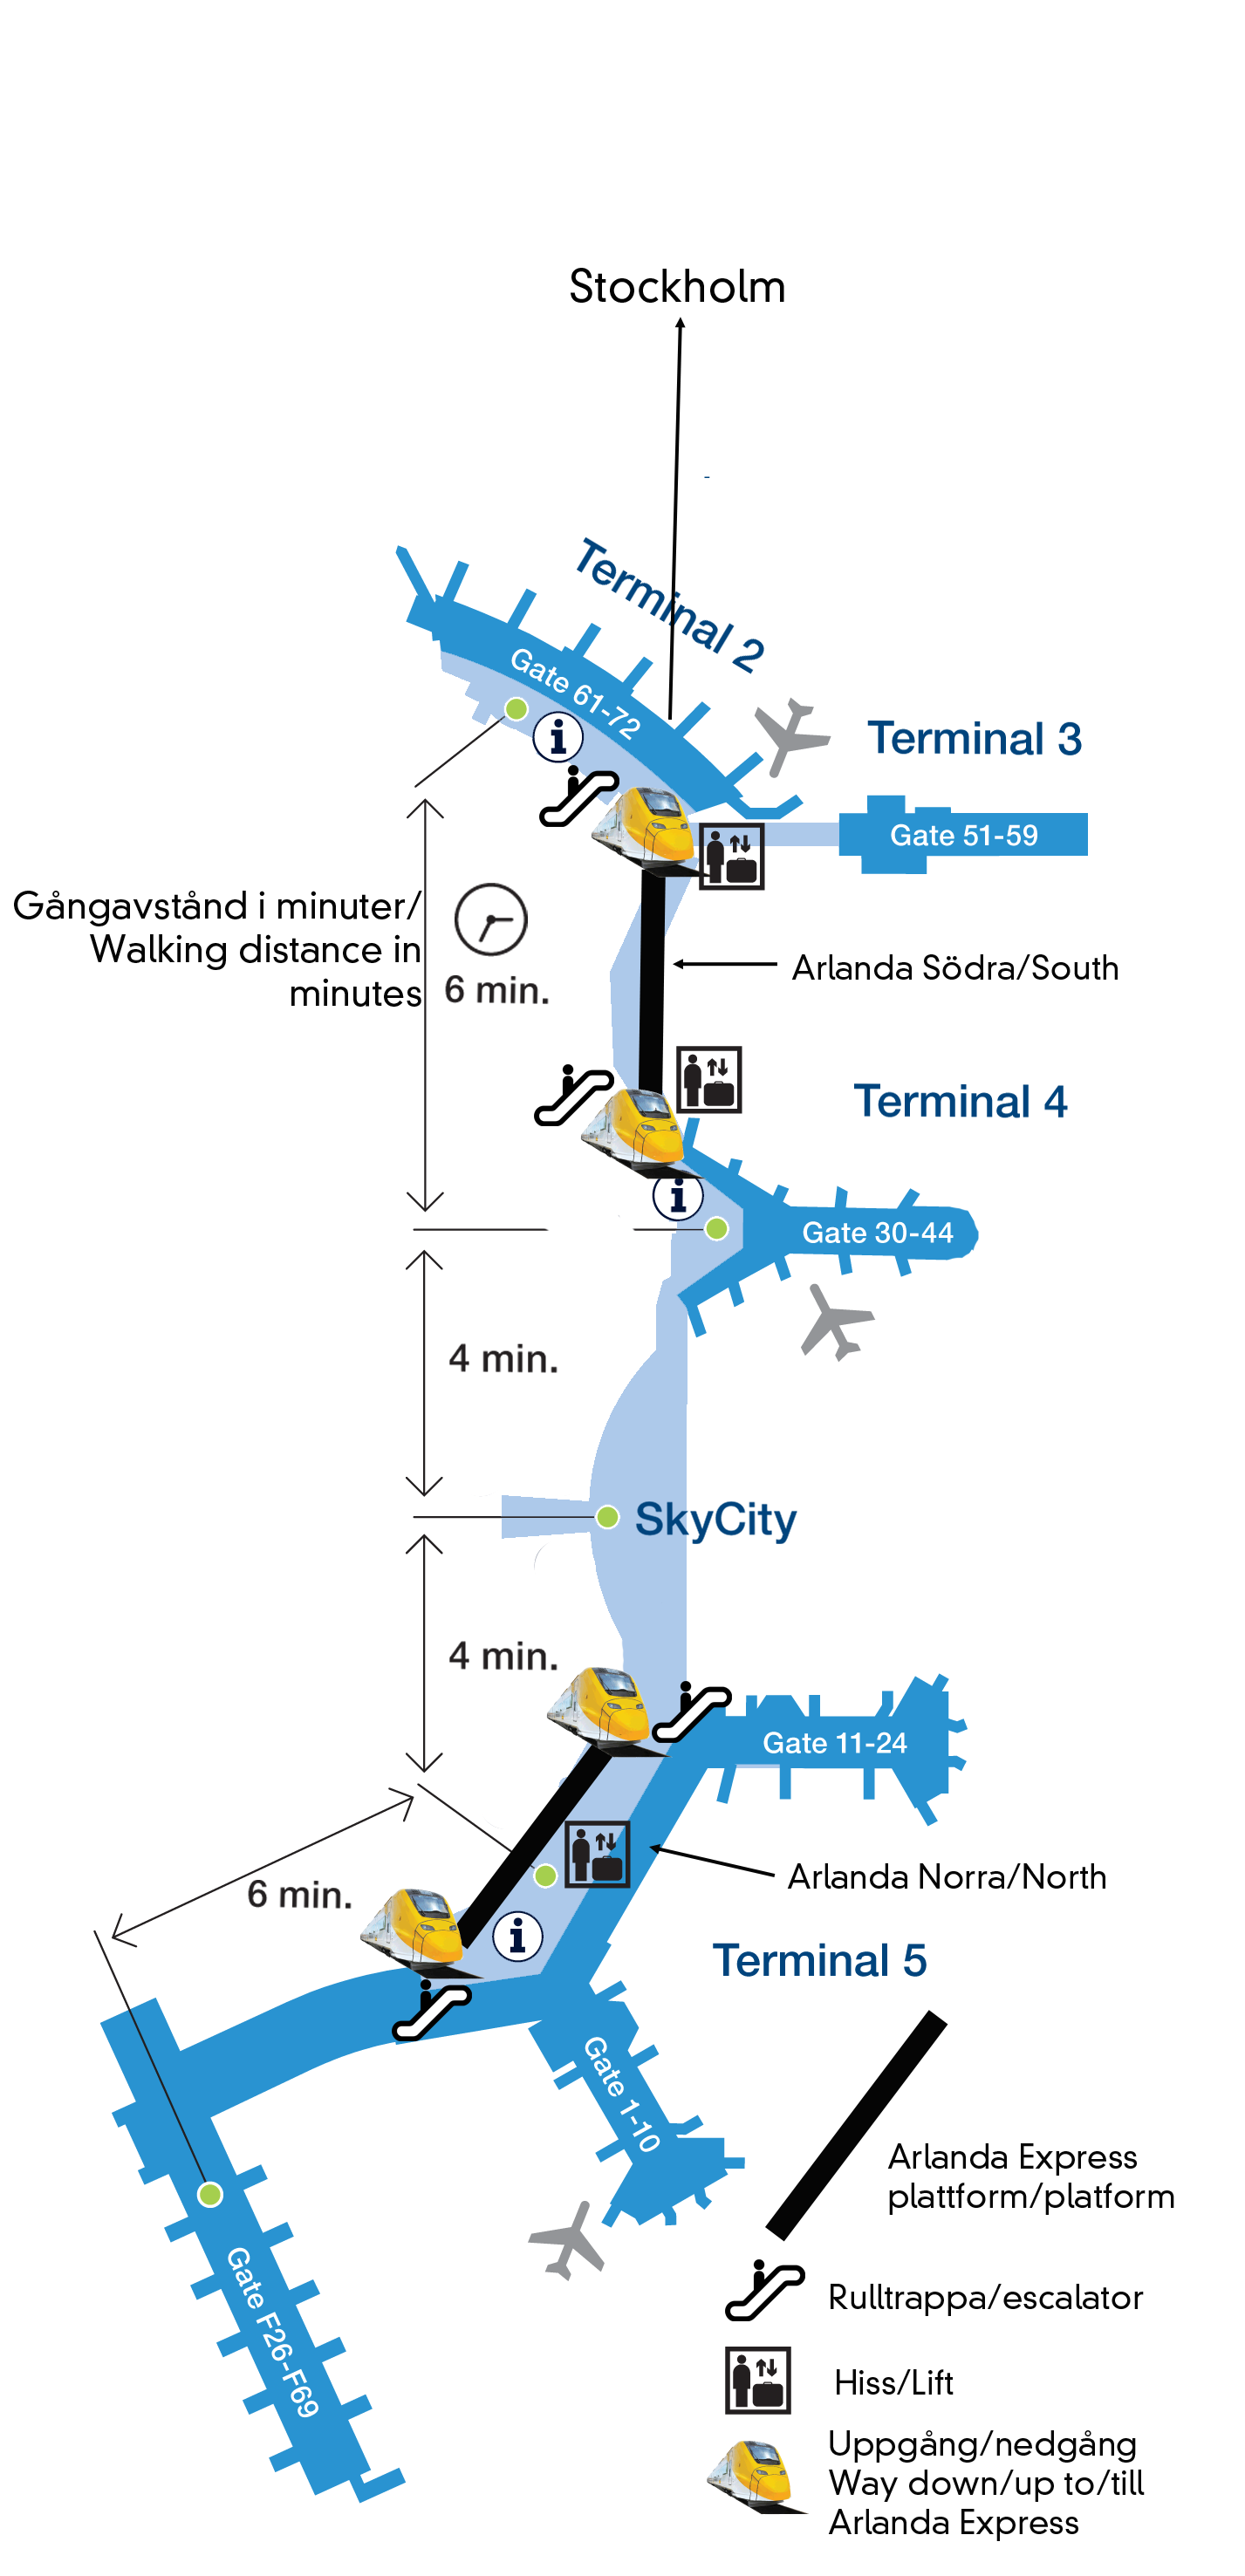 Airport Map Map And Express Terminals Of All Diagram Aviation The Arlanda